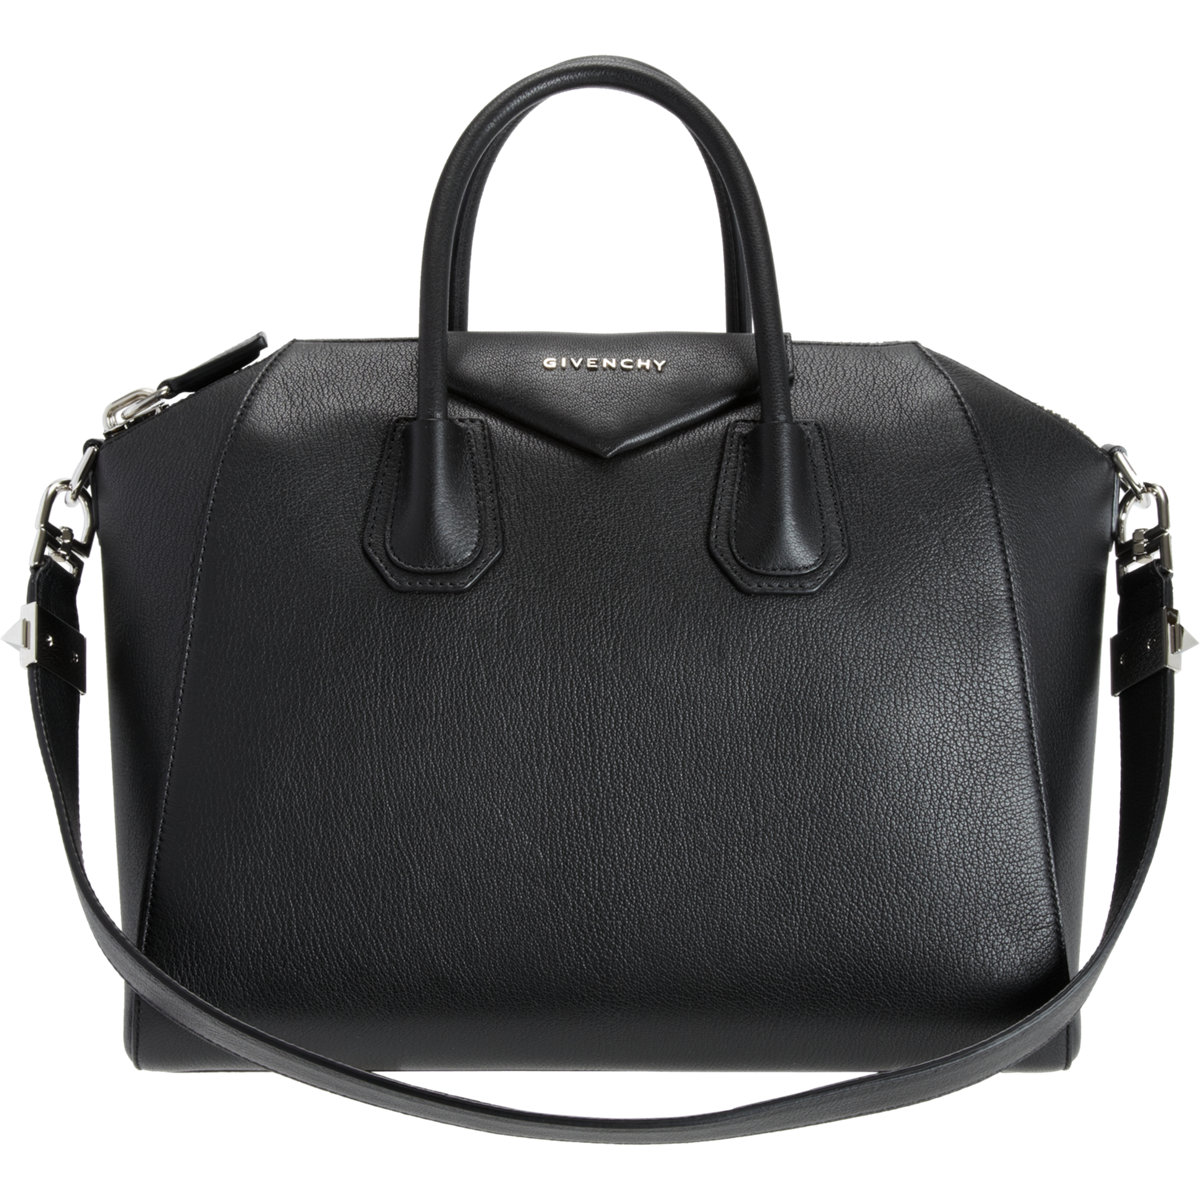 Givenchy Medium Antigona Duffel at Barneys.com